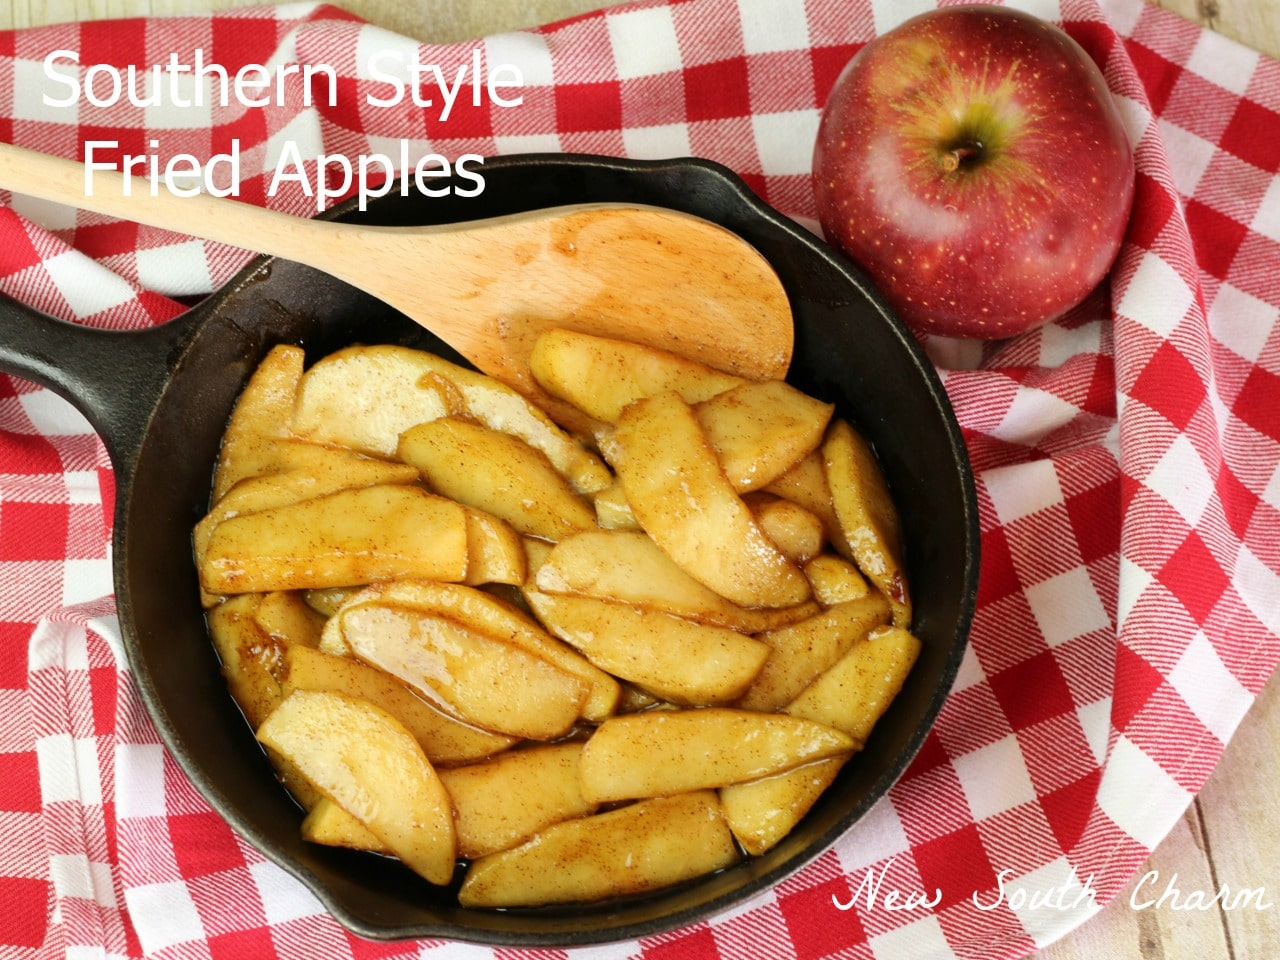 Southern Style Fried Apples are an easy recipe that's perfect for enjoying the bounty of fresh apples in the Fall.